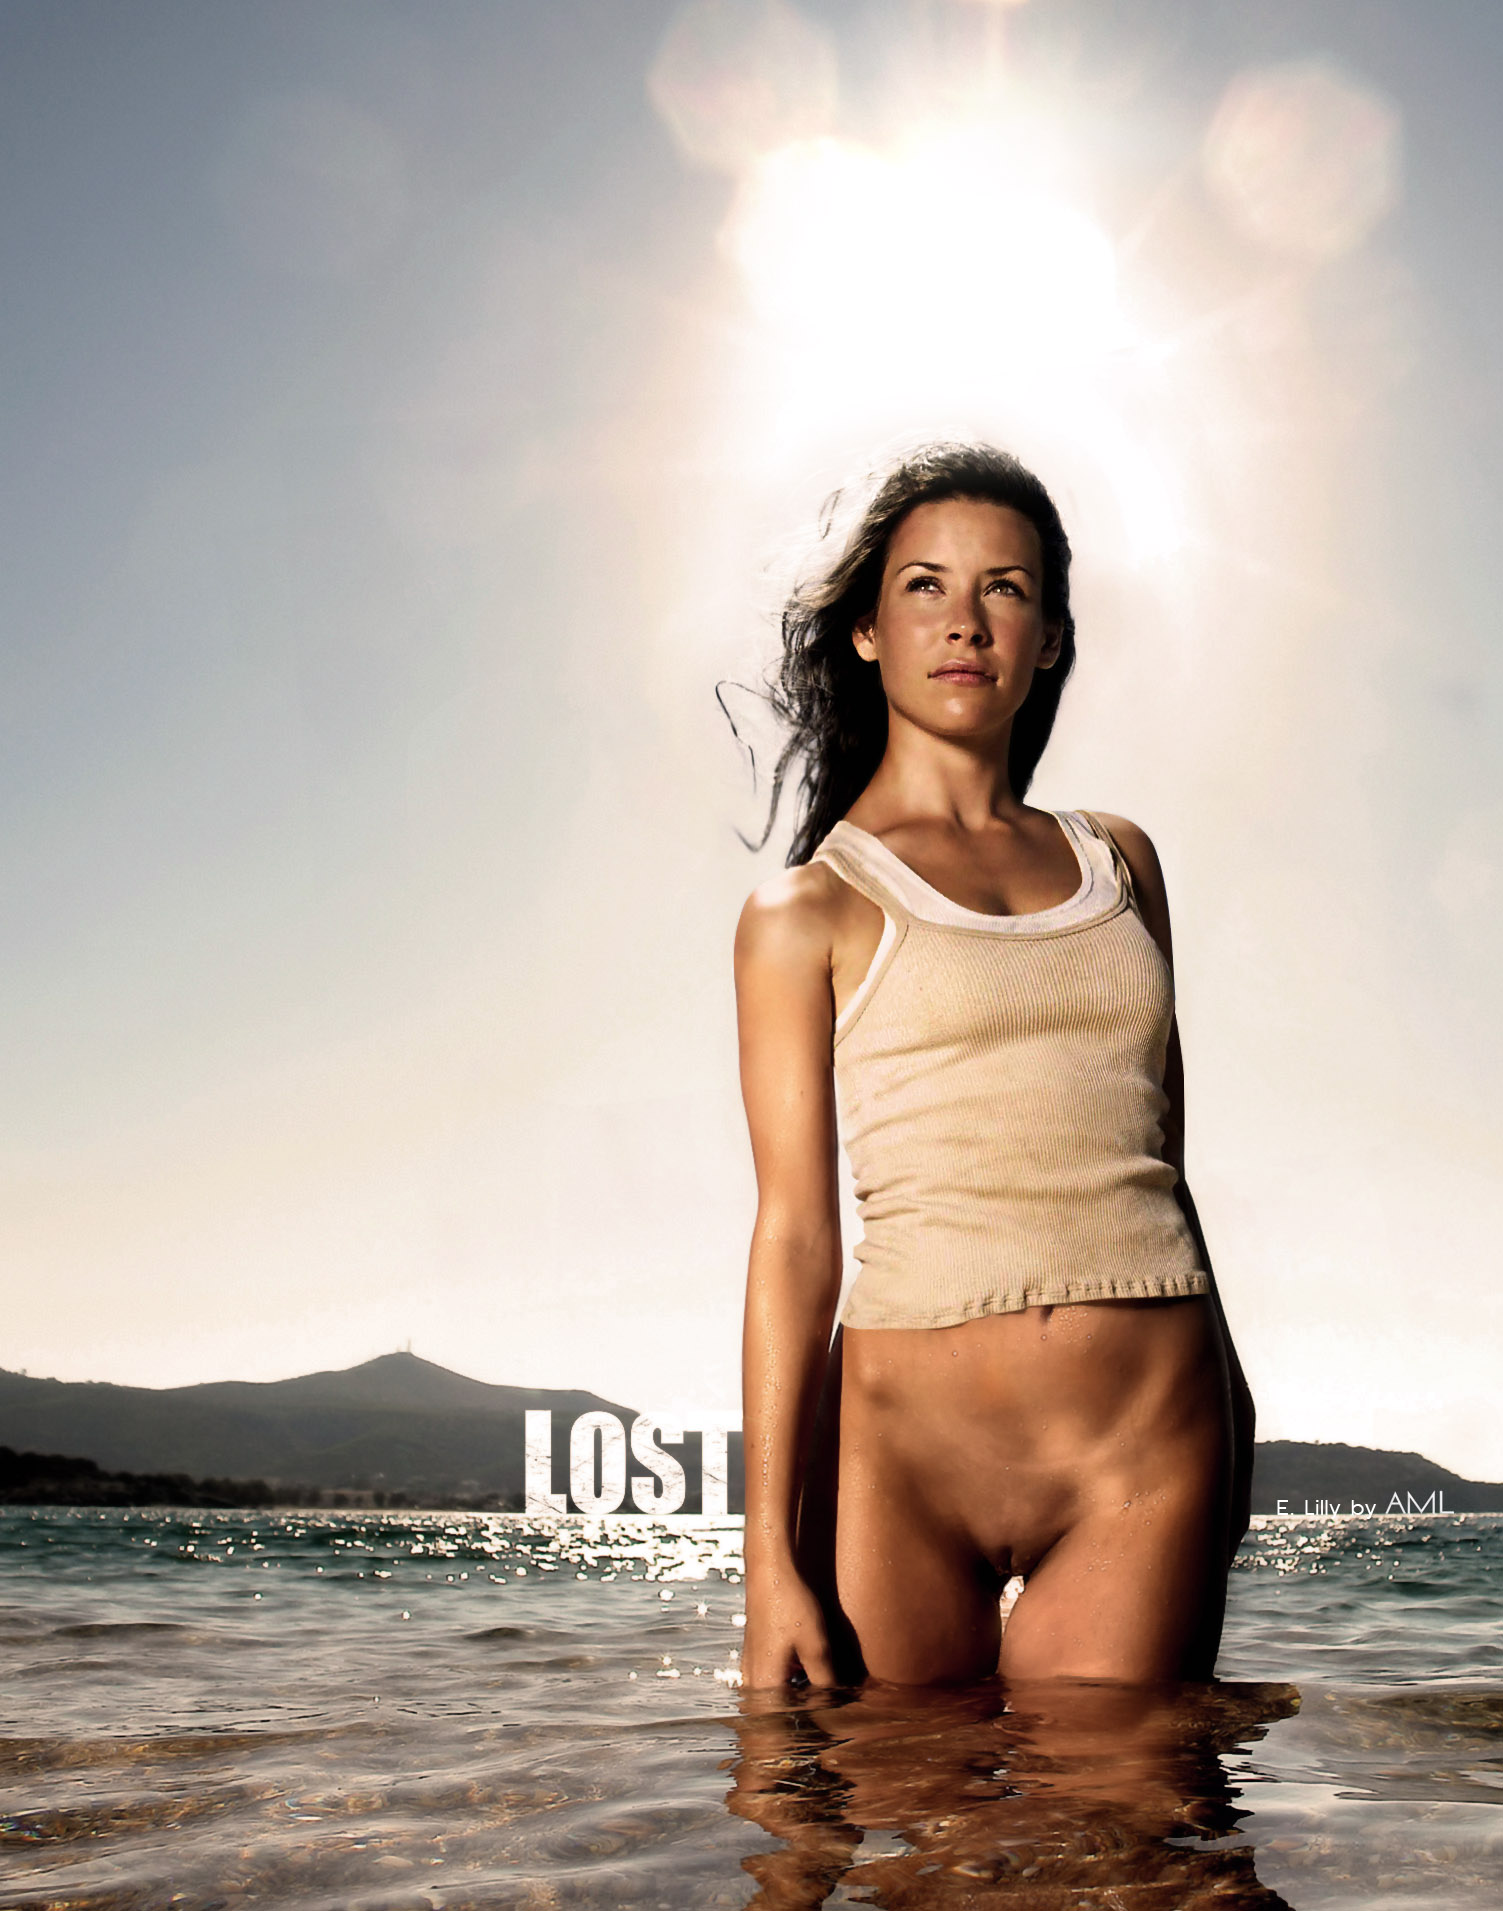 Evangeline Lilly Nude Pics and Videos -- - Top Nude Celebs